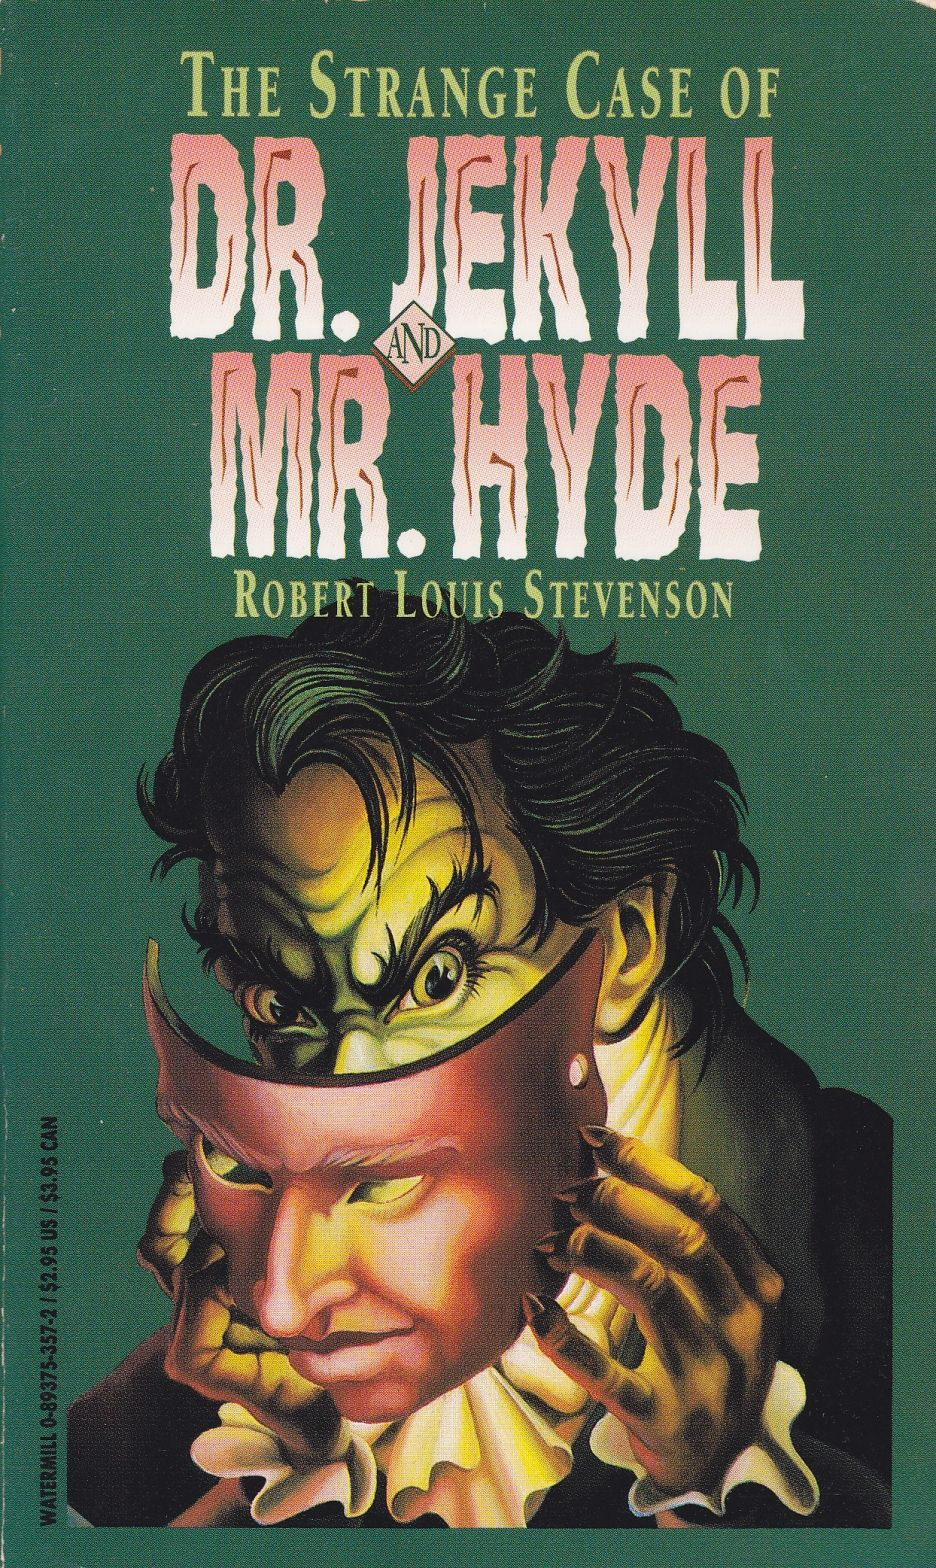 Image result for The Strange Case of Dr Jekyll and Mr. Hyde